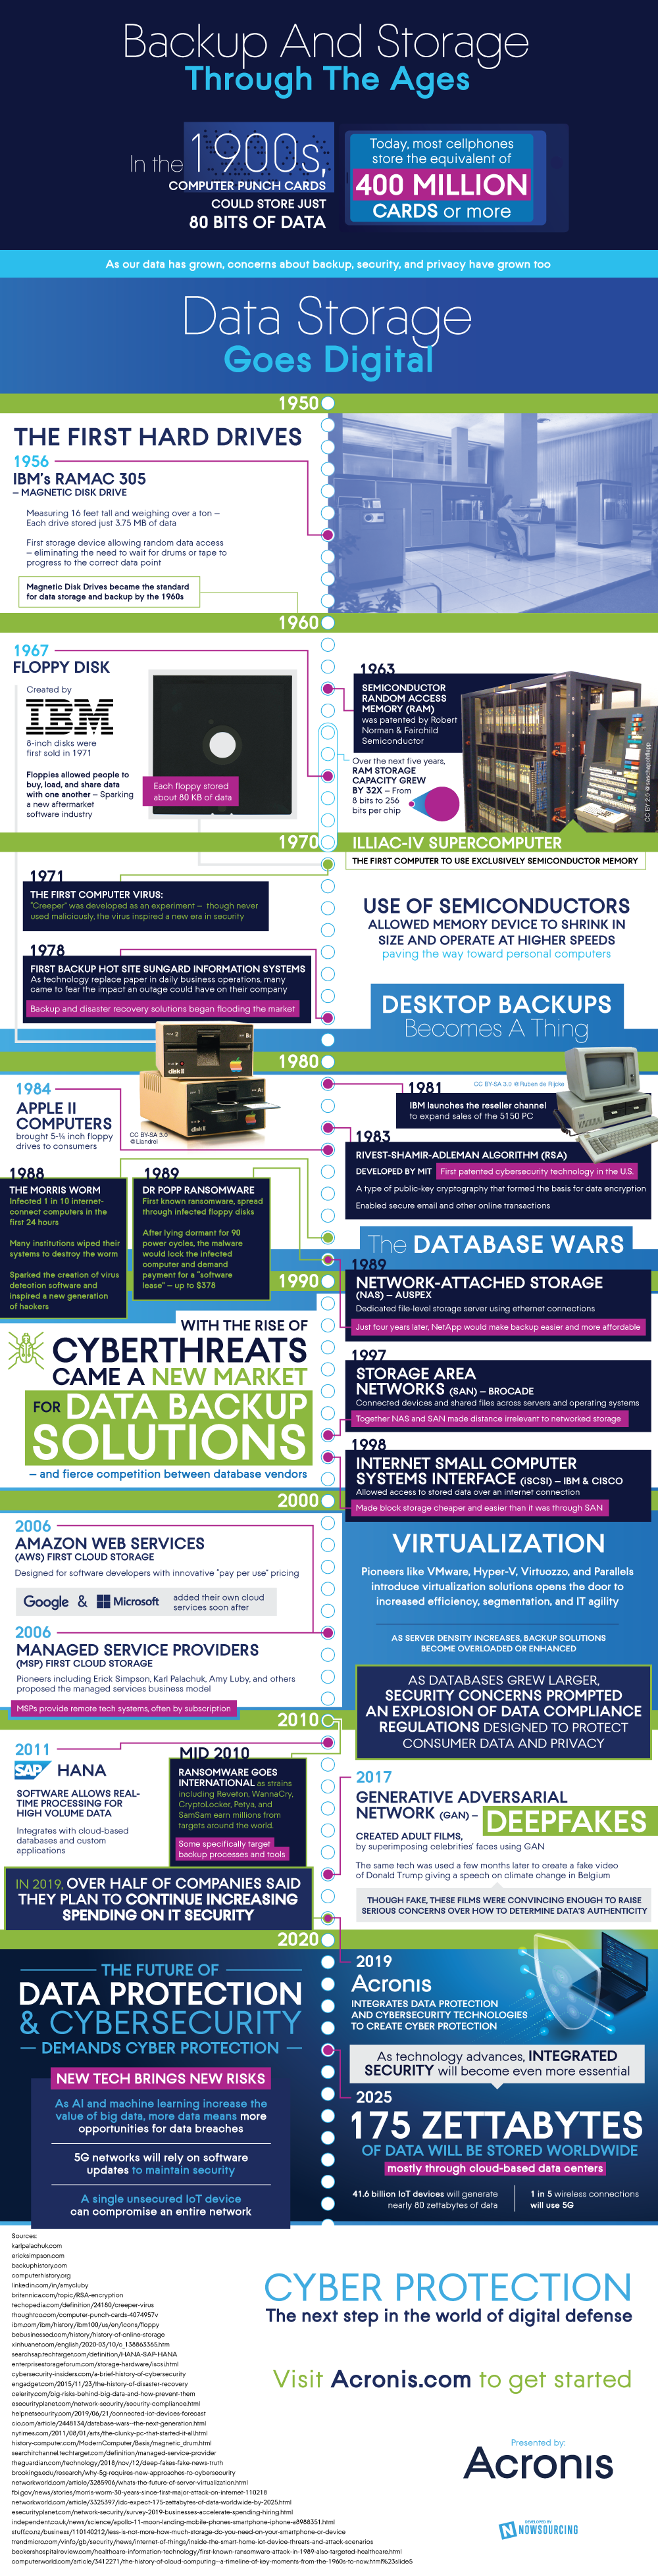 A View Back to the Cyber Evolution #infographic